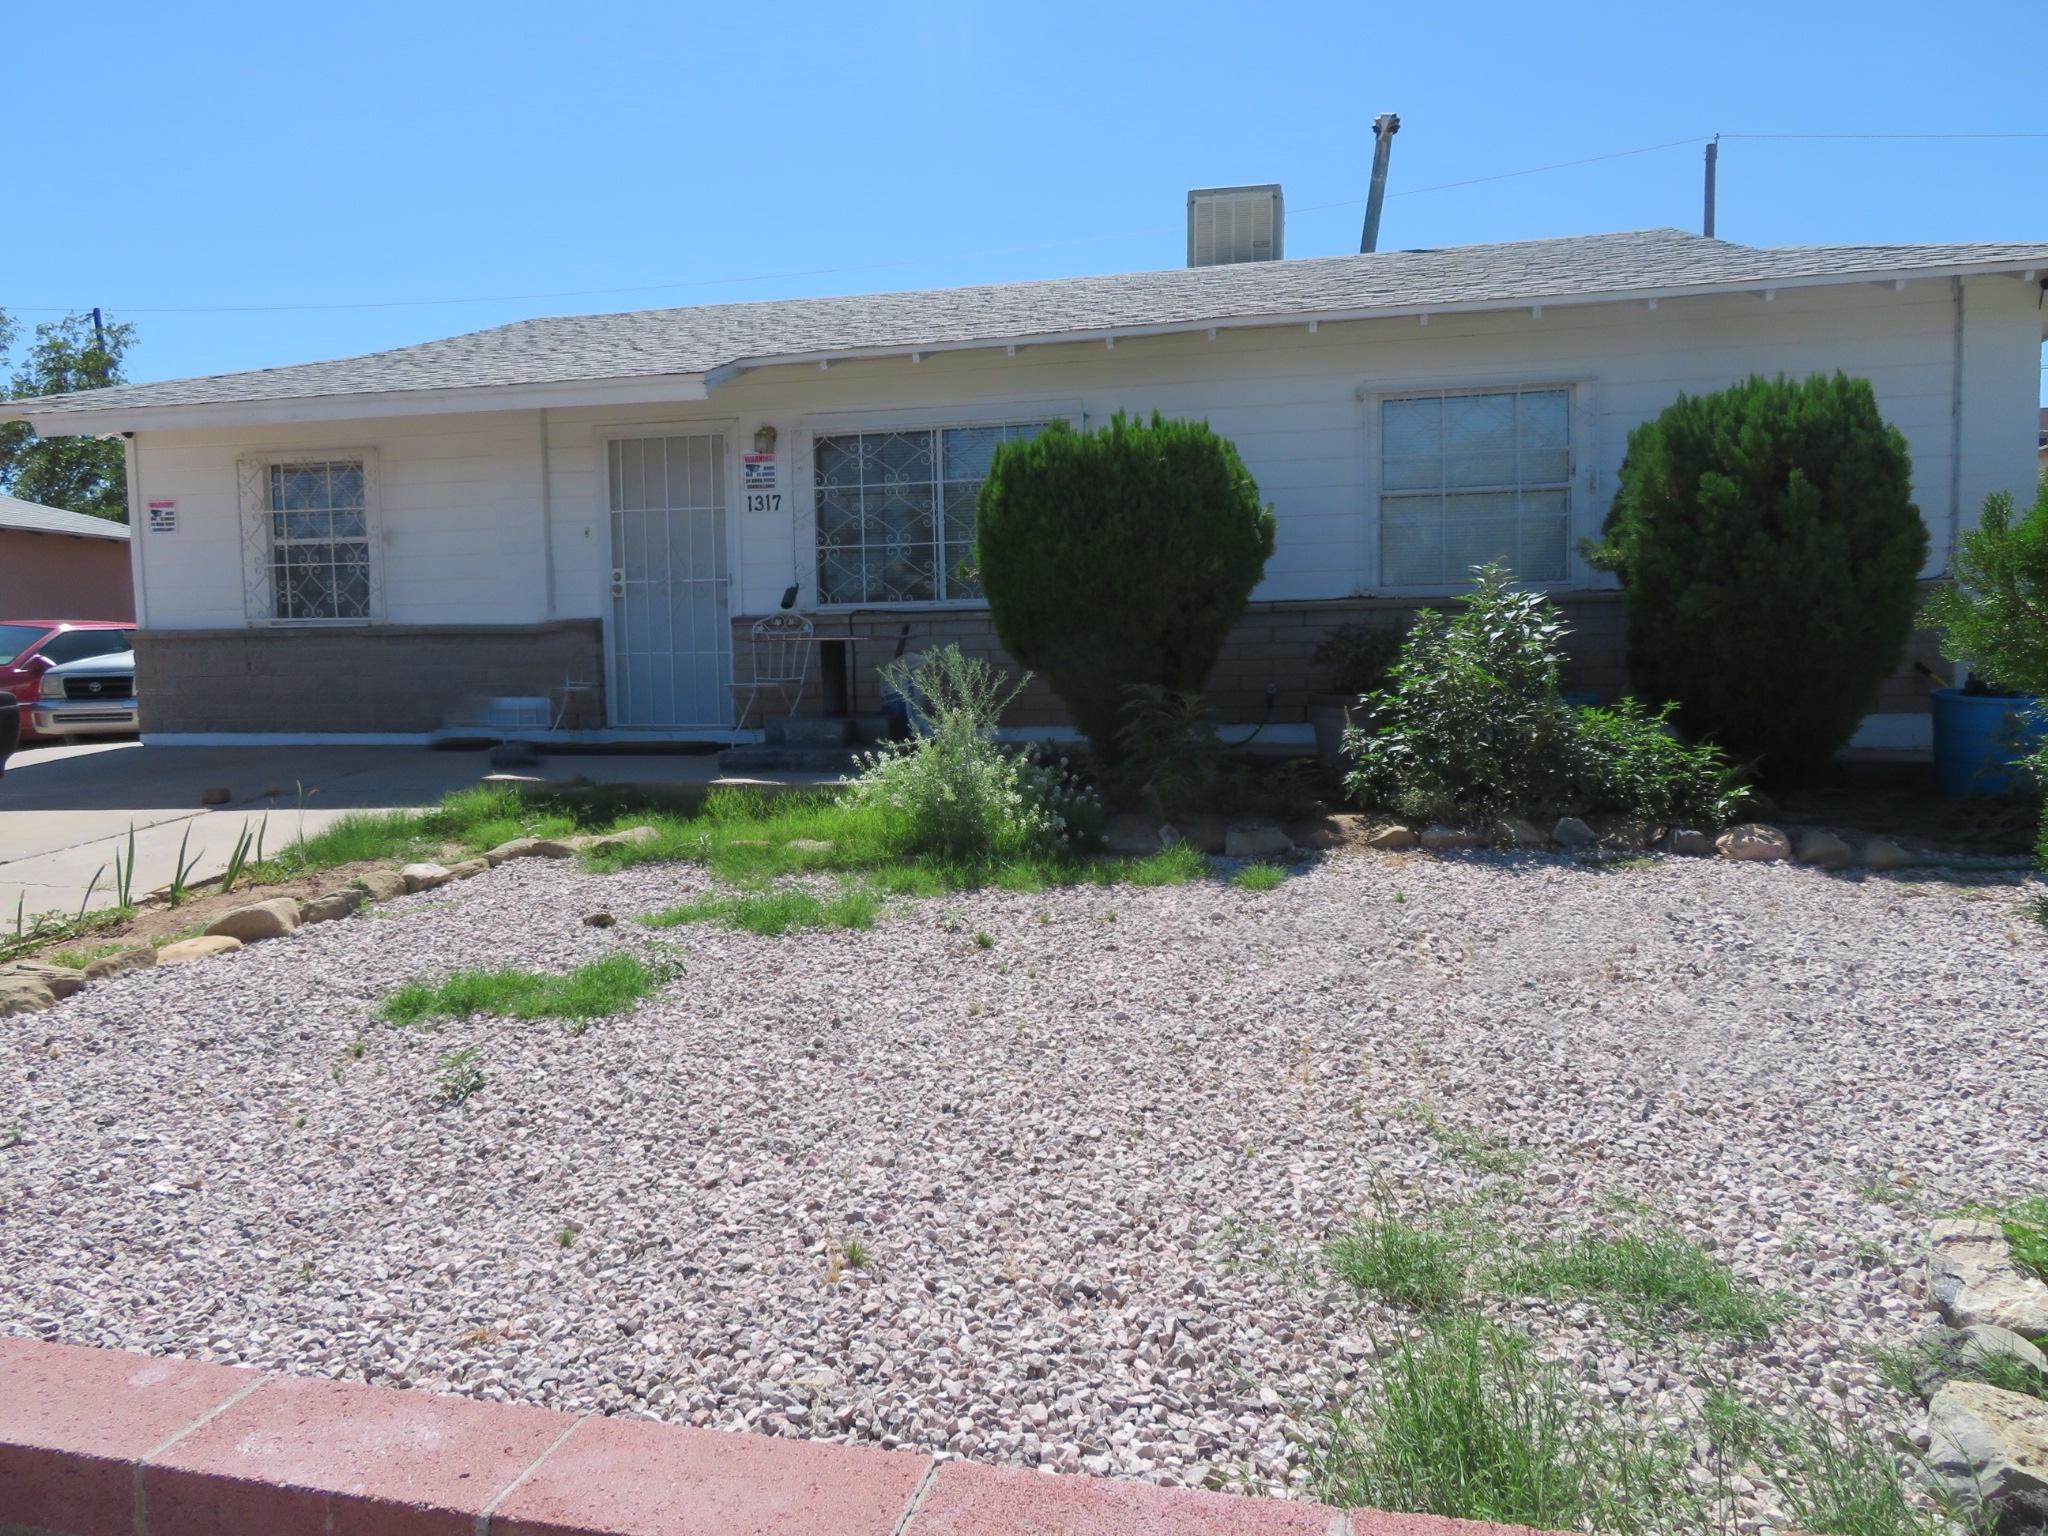 Check out this well maintained single story home with great size rooms and remodeled bathroom.  The home has newer carpet in living room and all bedrooms, Kitchen has new wood laminate floors and spacious cabinets . Furnace replaced 3 years ago,  Good size backyard with a storage unit.  This home could easily have full backyard access if needed to park an RV. Come see today!!